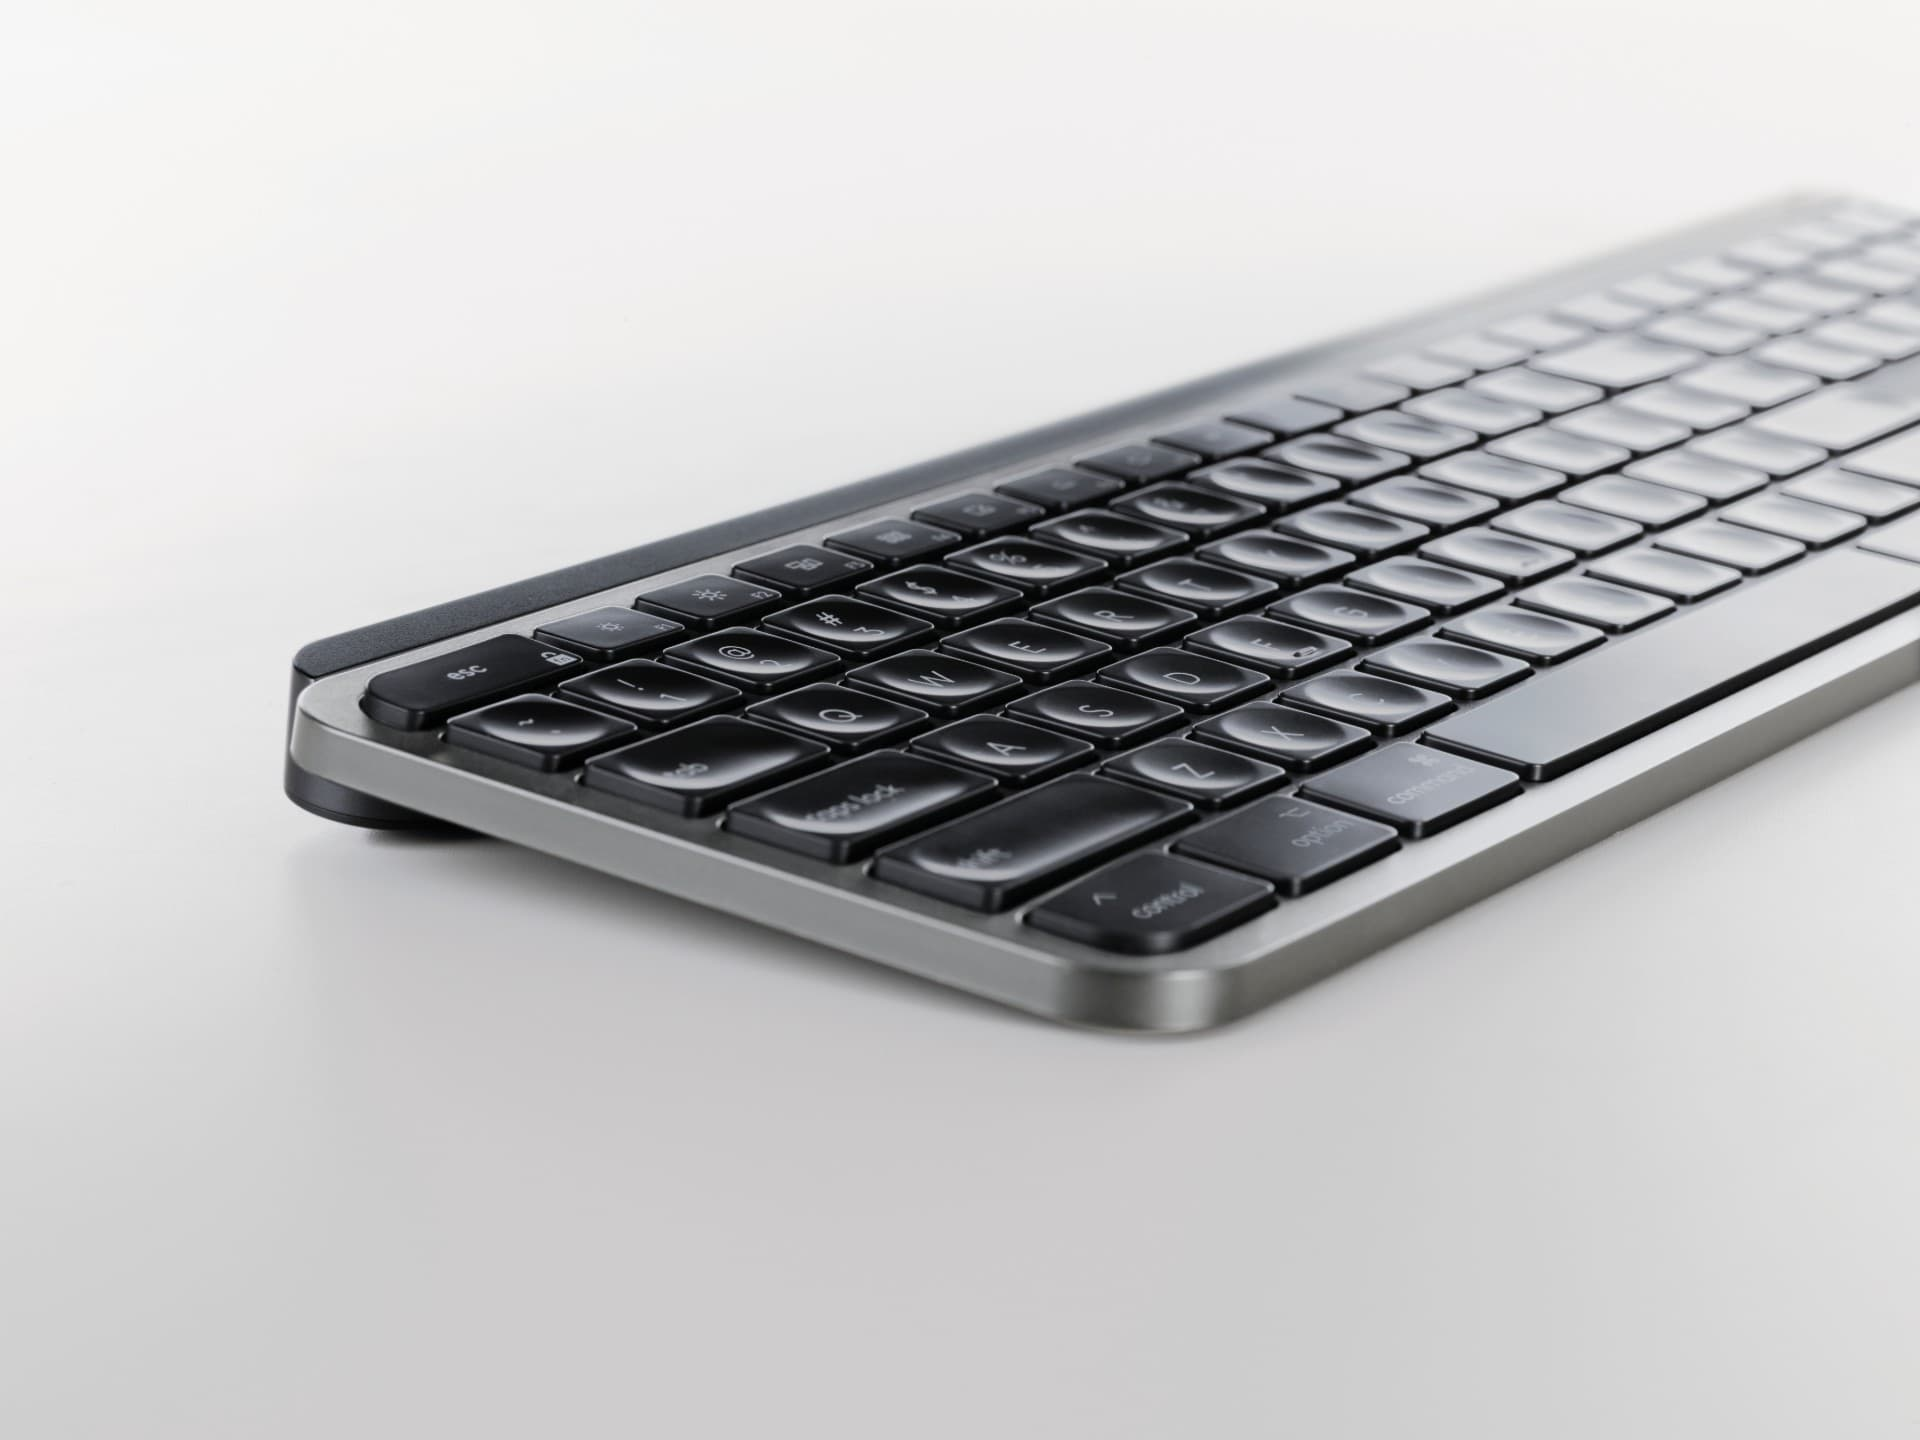 MX Keys for Mac looks gorgeous in space gray (and the keys are in the right spots).